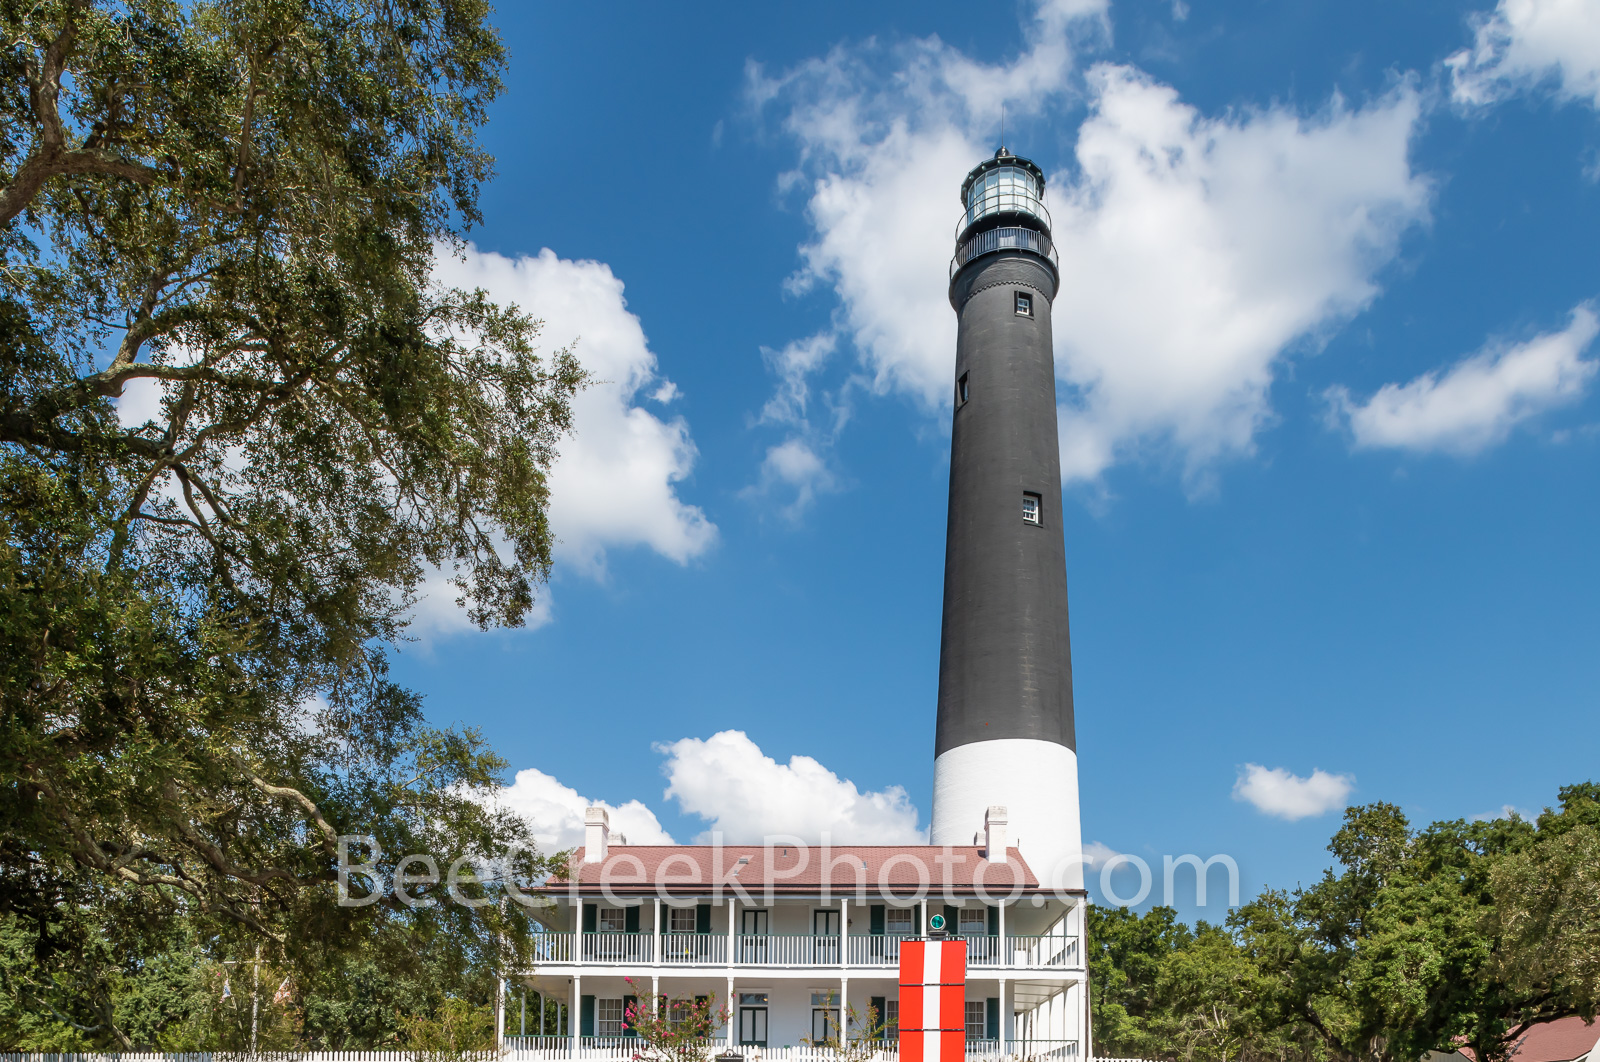 Pensacola Lighthouse 2 -  This is a capture of the Pensacola Lighthouse with the keepers dwelling which is now a museum and gift...